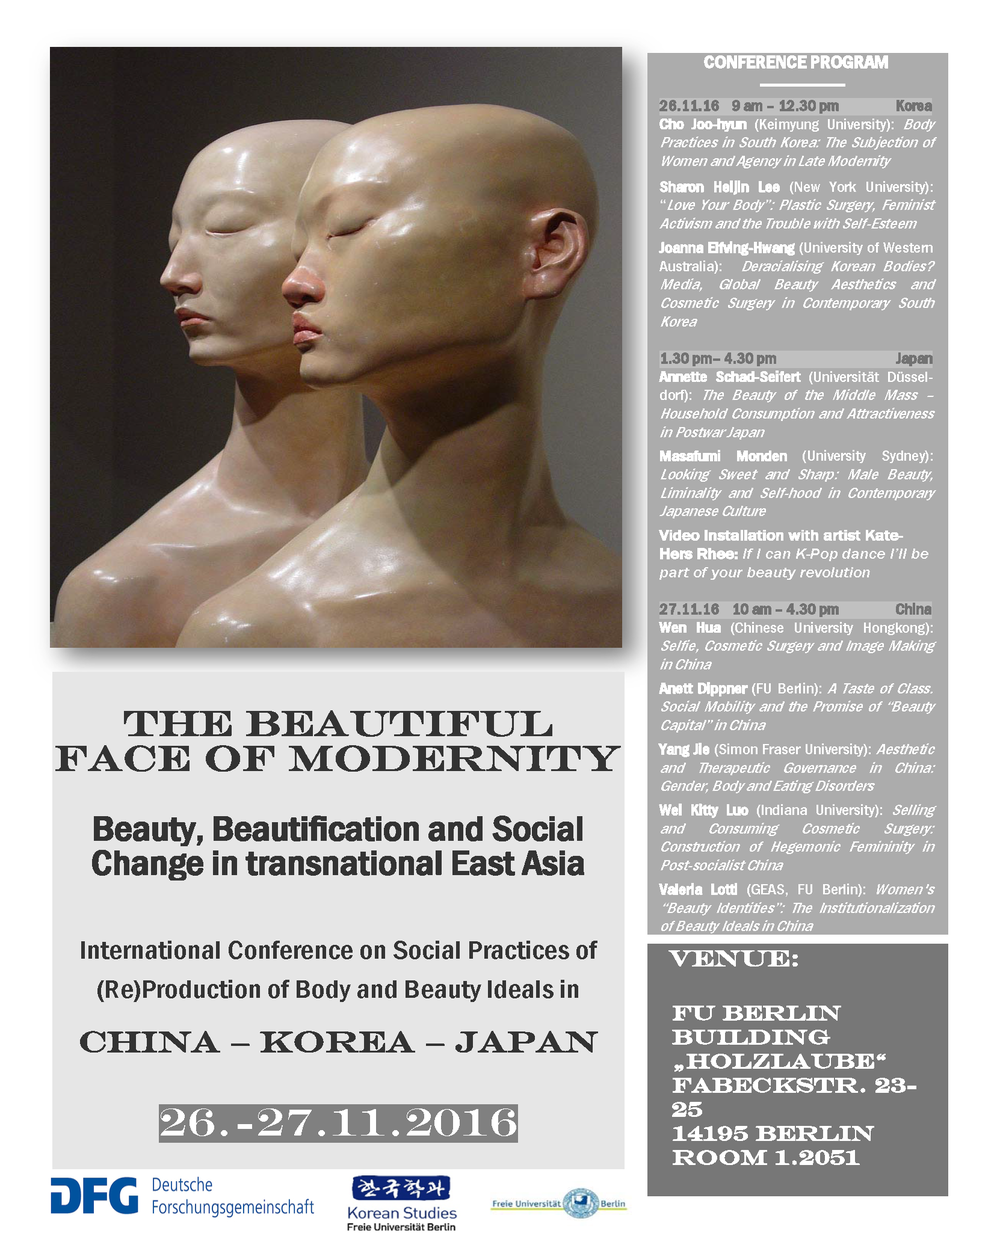 The beautiful face of modernity poster